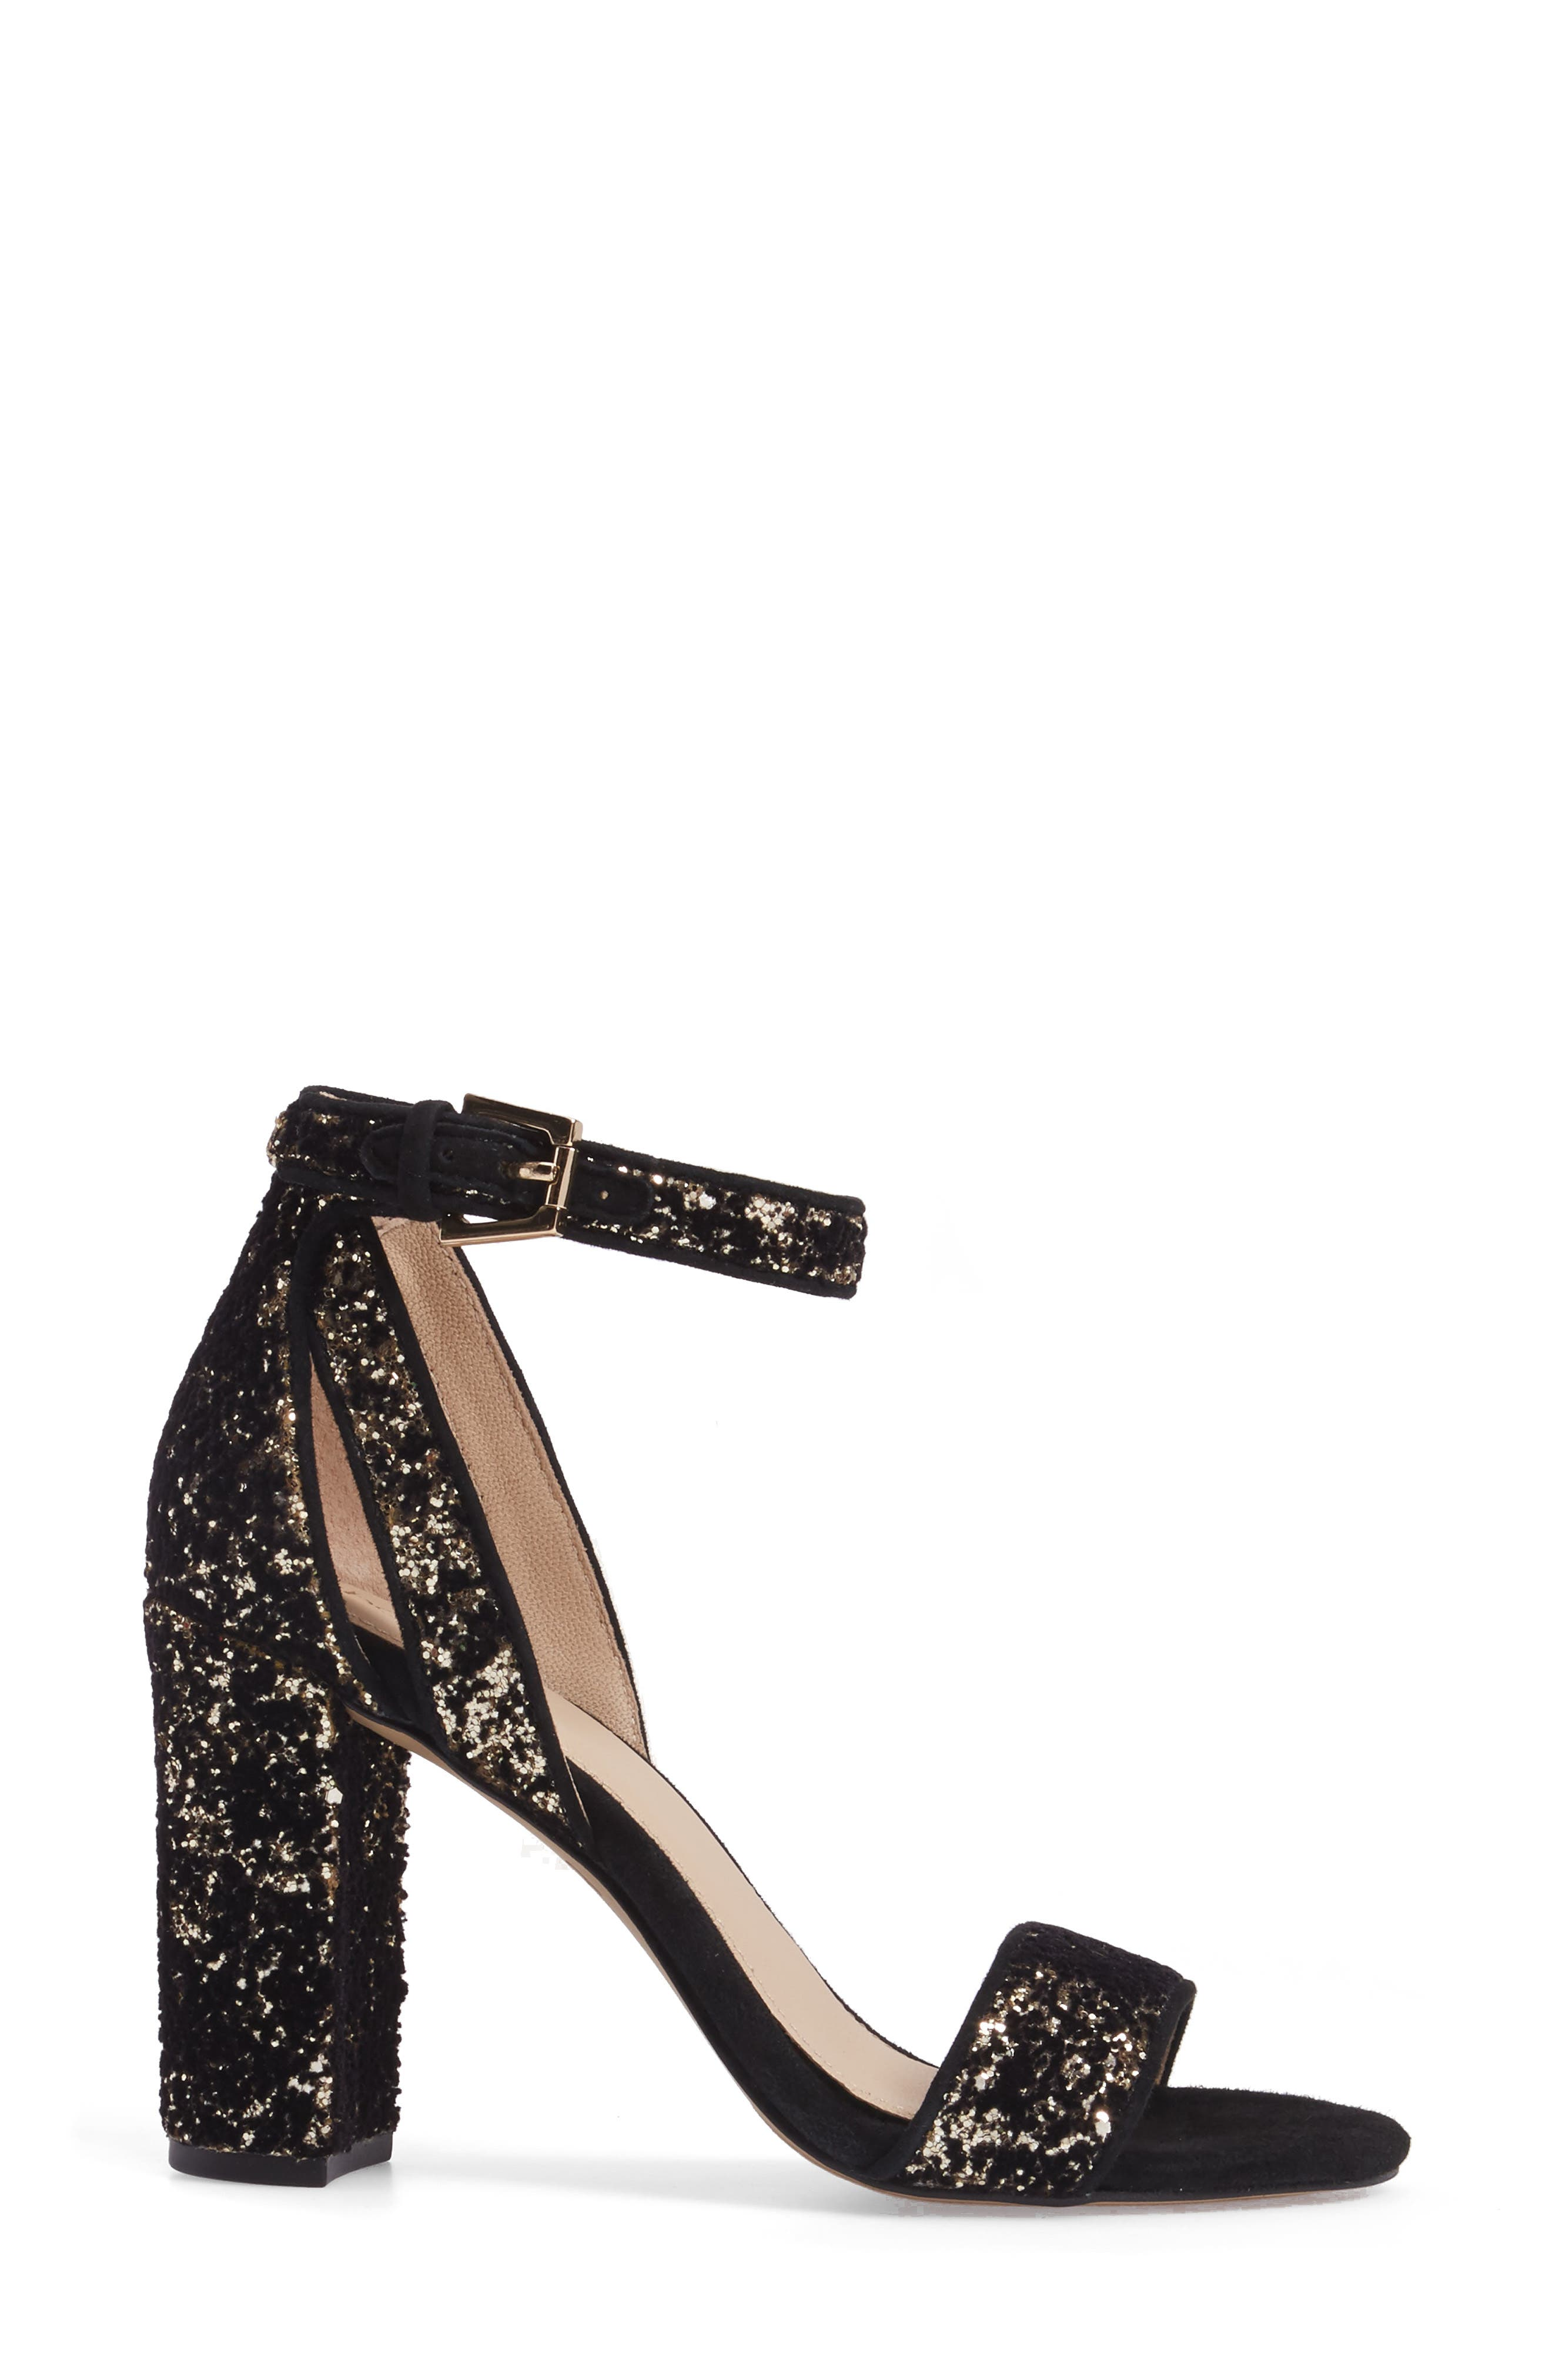 Alternate Image 3  - Botkier Gianna Ankle Strap Sandal (Women)